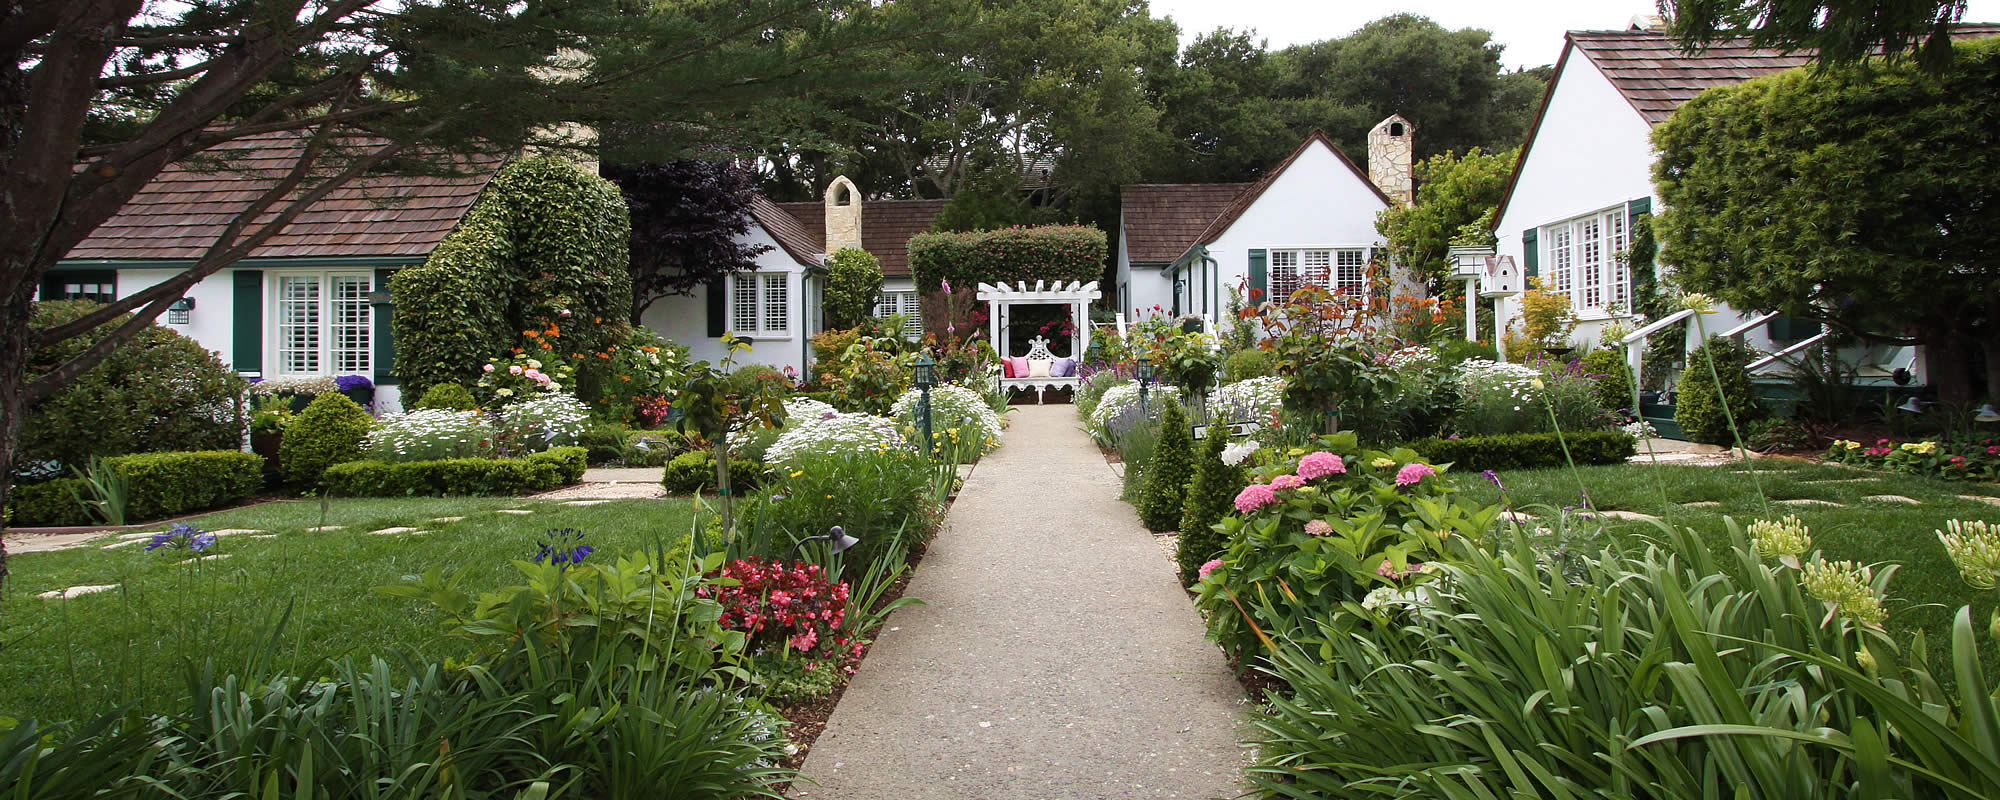 carmel cottages in lush gardens near ocean lincoln green inn